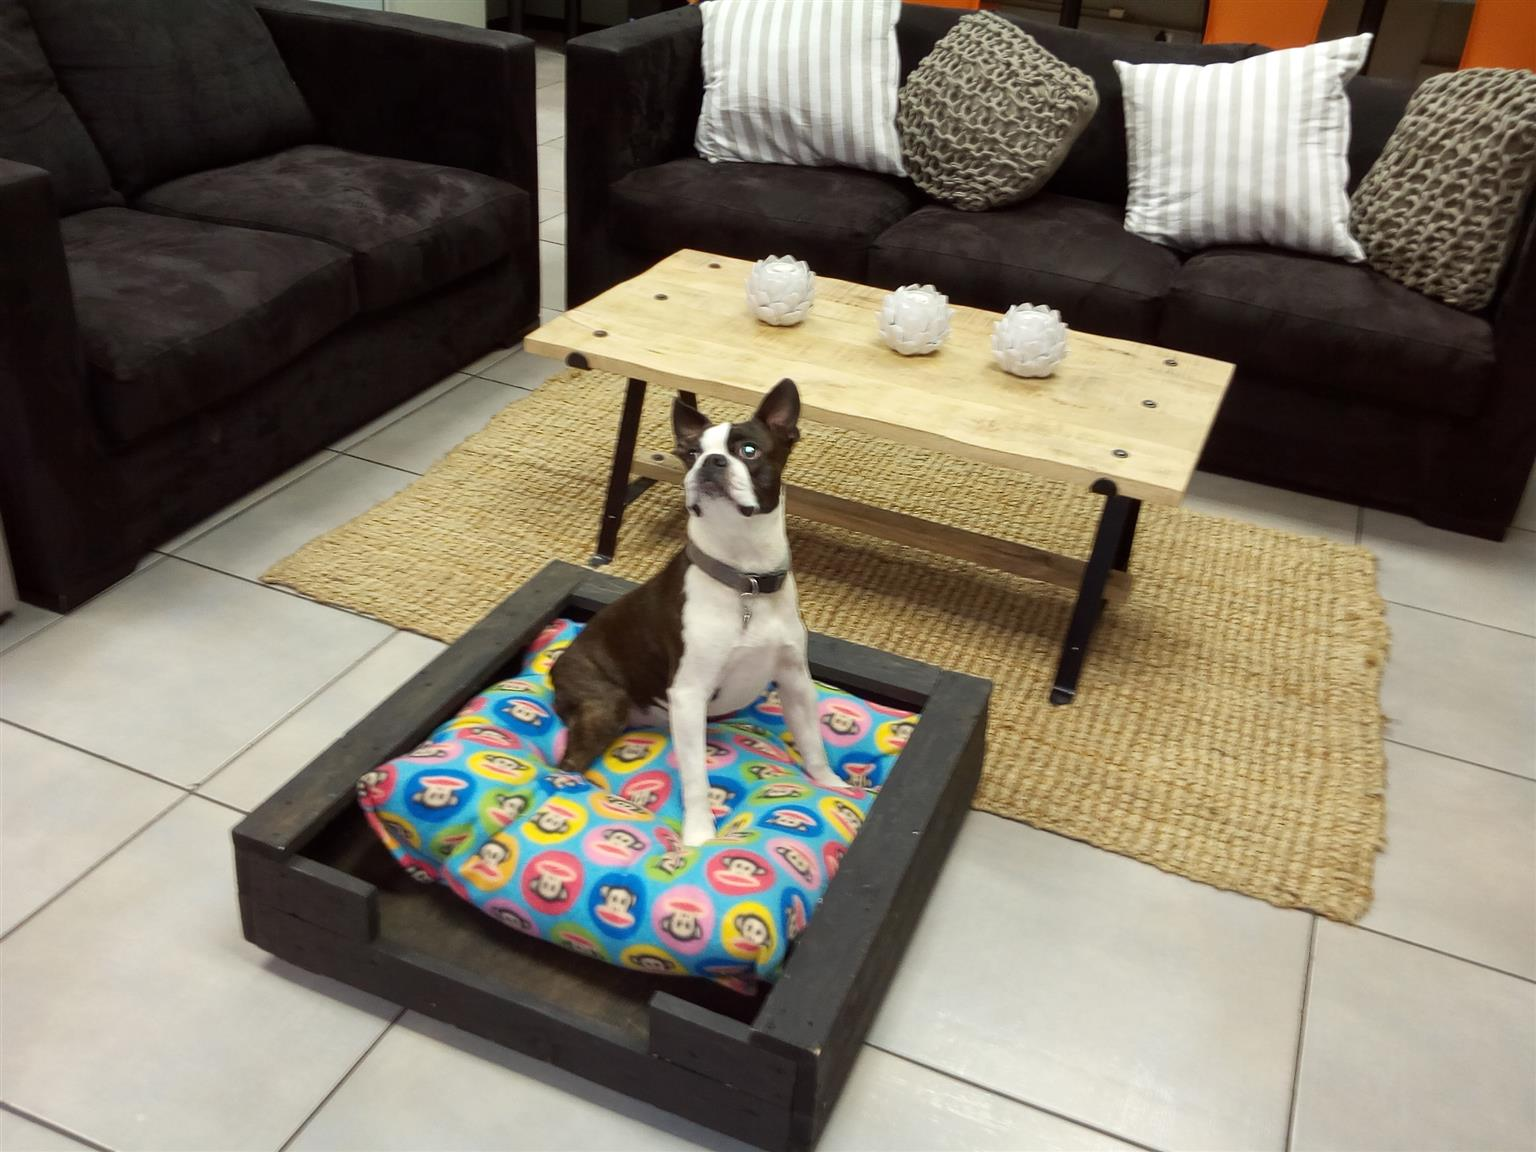 Doggie Beds For Sale: